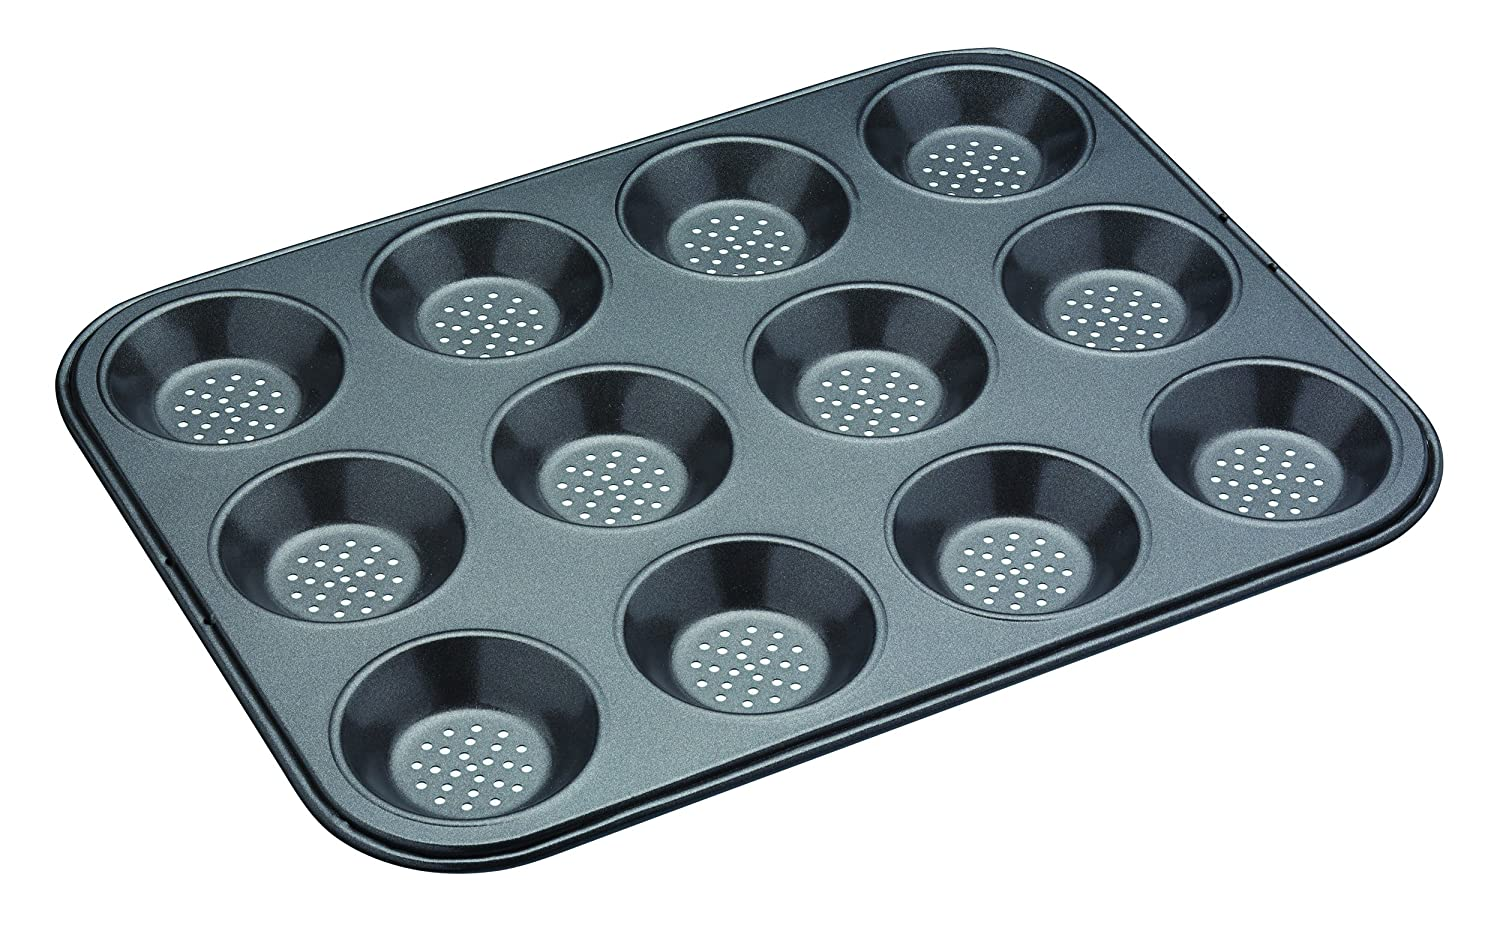 KitchenCraft MasterClass Crusty Bake Baking Tray/Mince Pie Tin, 12 Holes, Silver Kitchen Craft KCMCCB29